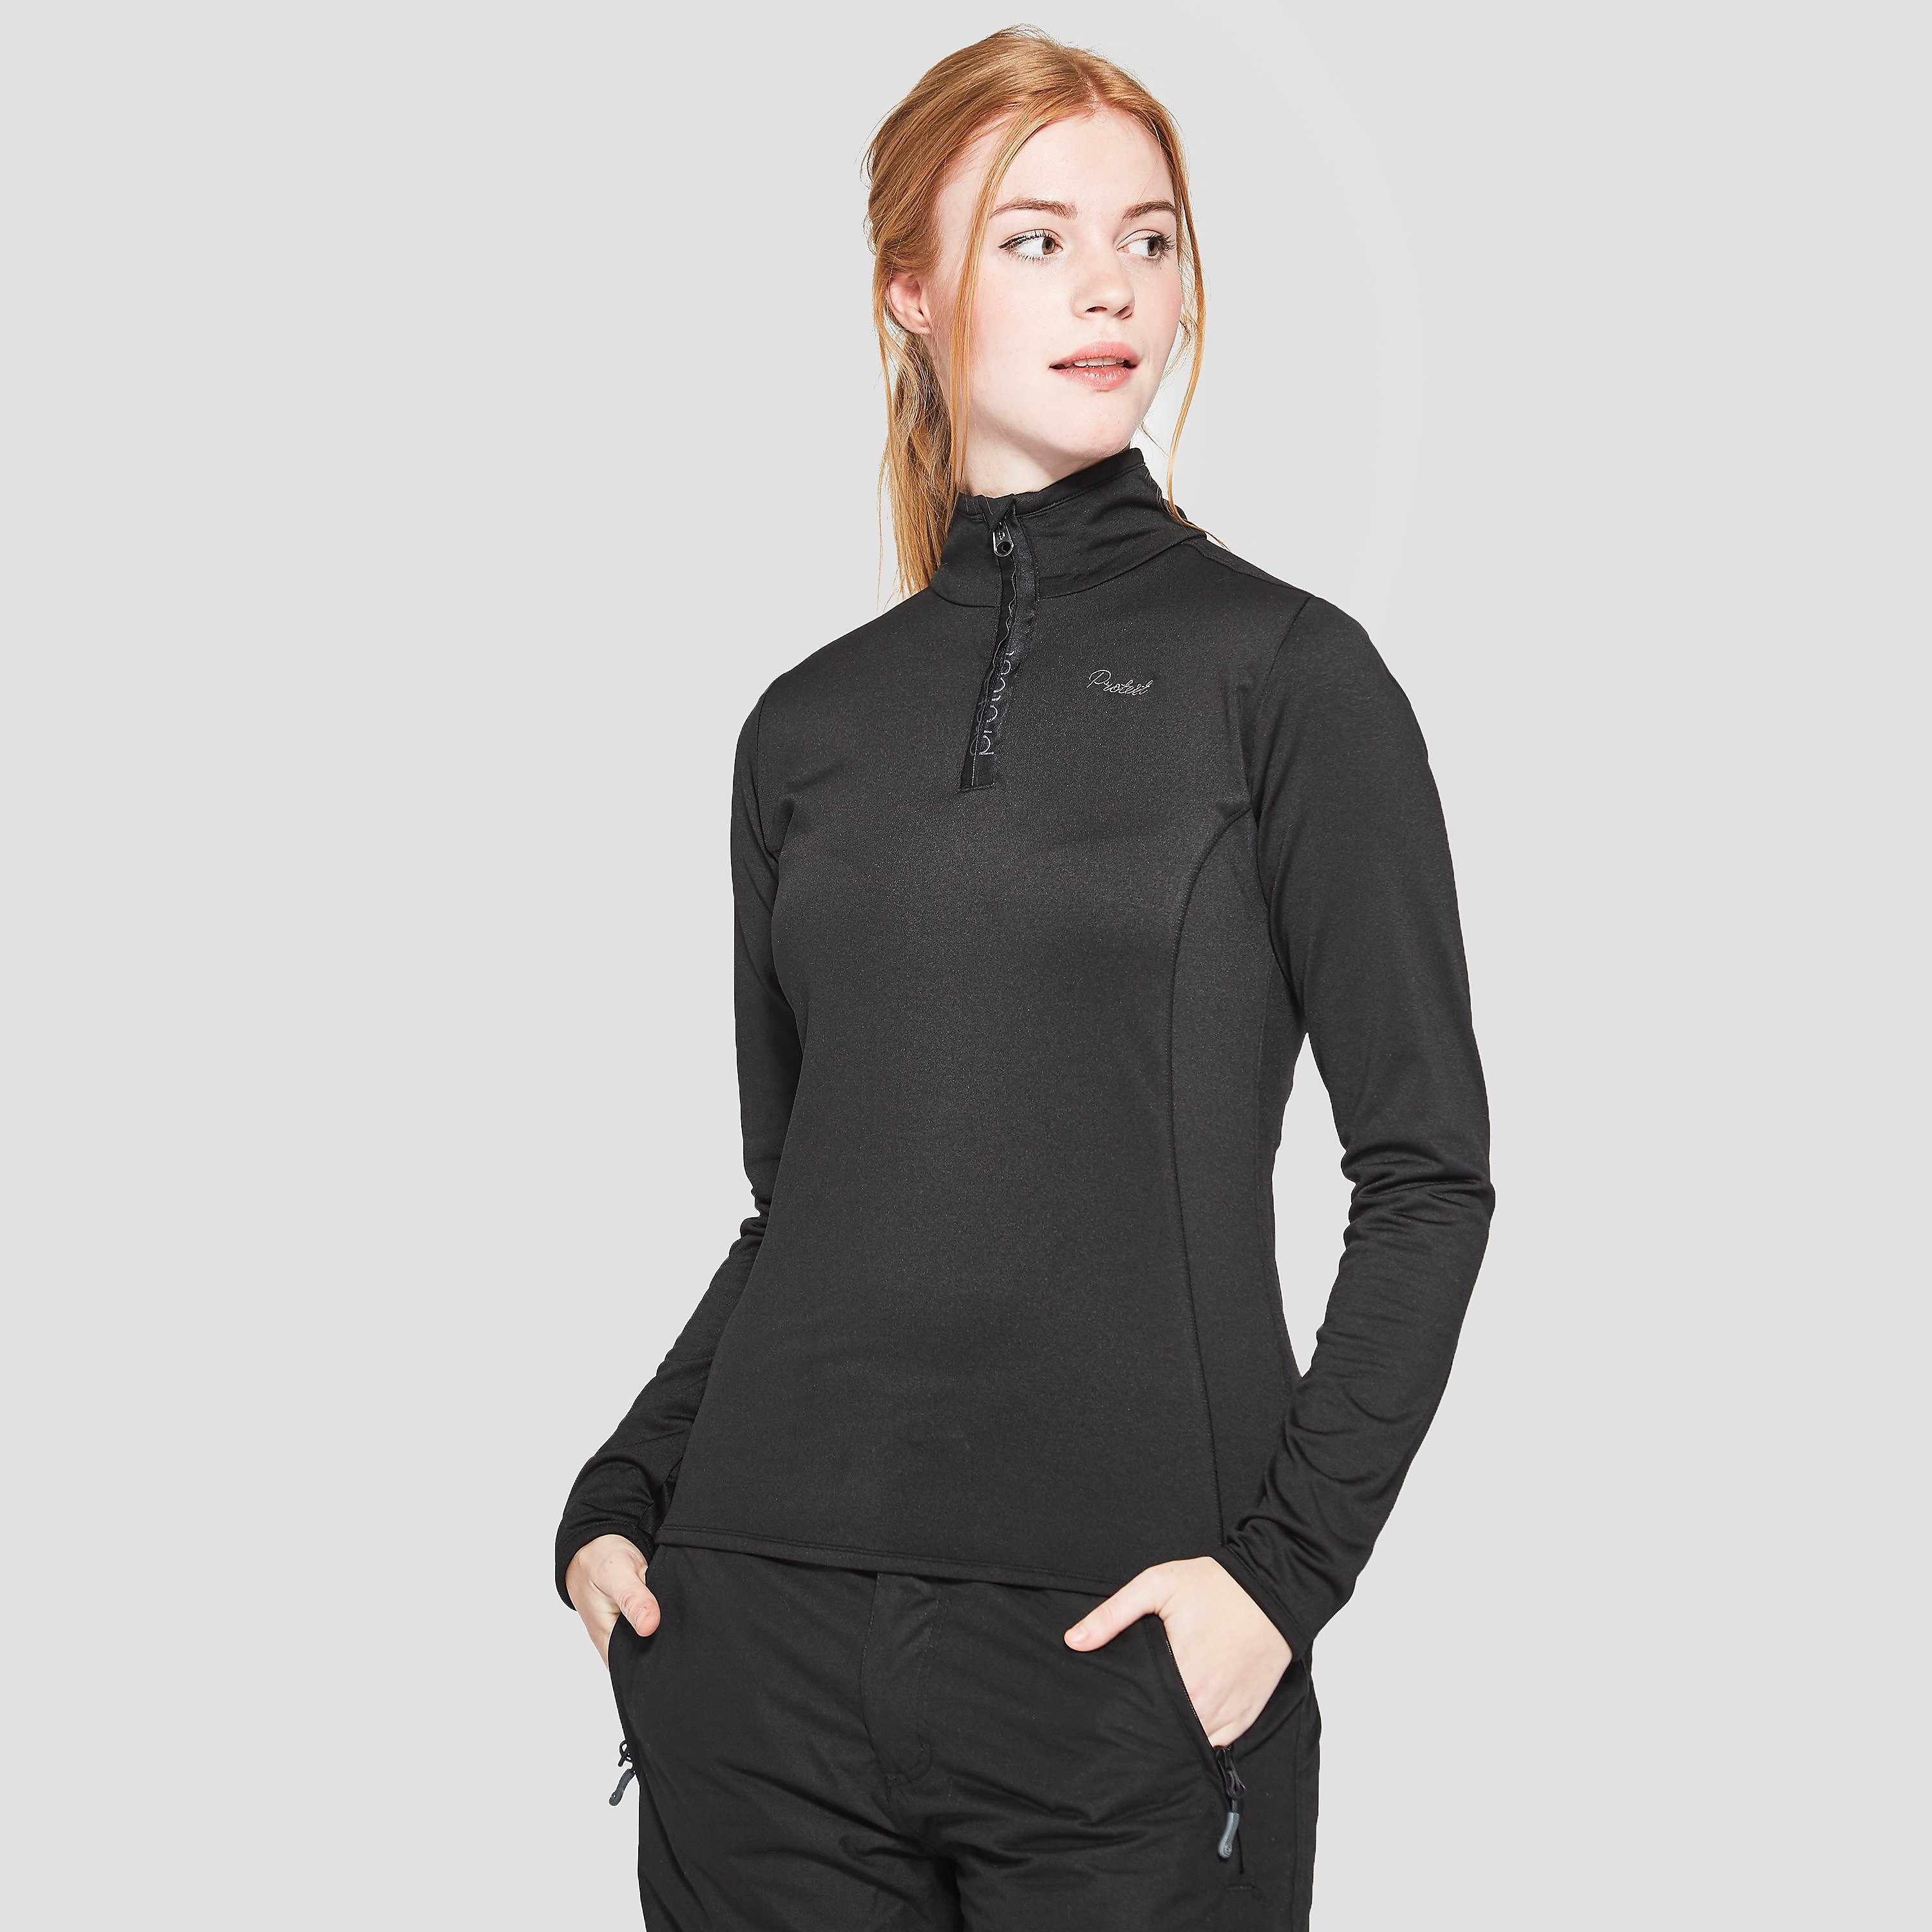 PROTEST PROTEST FABRIZOY 1/4-RITS WINTER TOP ZWART DAMES